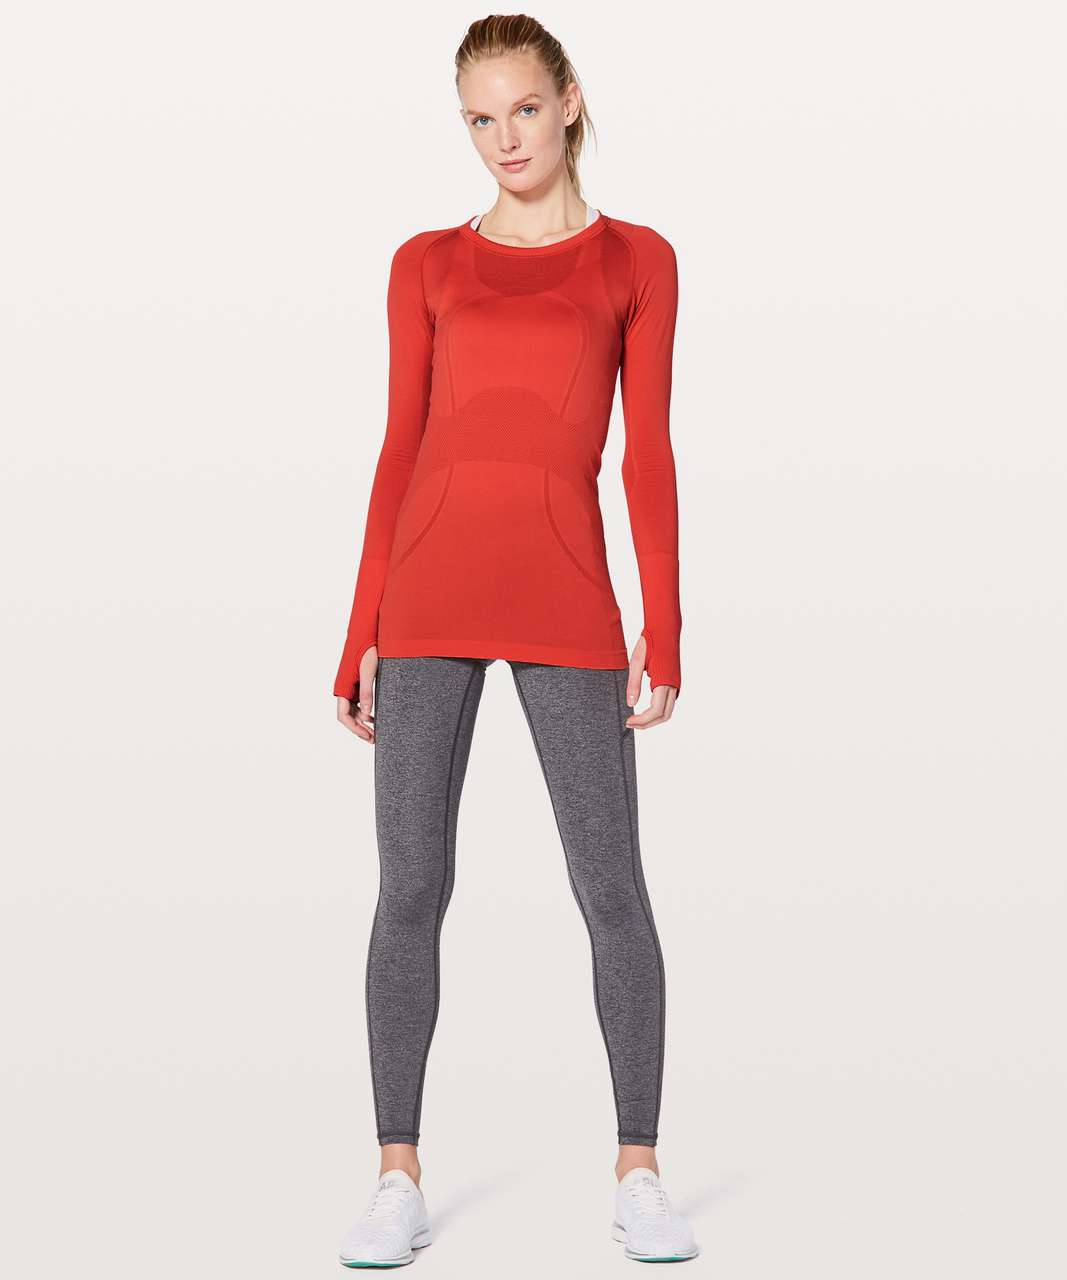 Lululemon Swiftly Tech Long Sleeve Crew - Vivid Flame / Vivid Flame